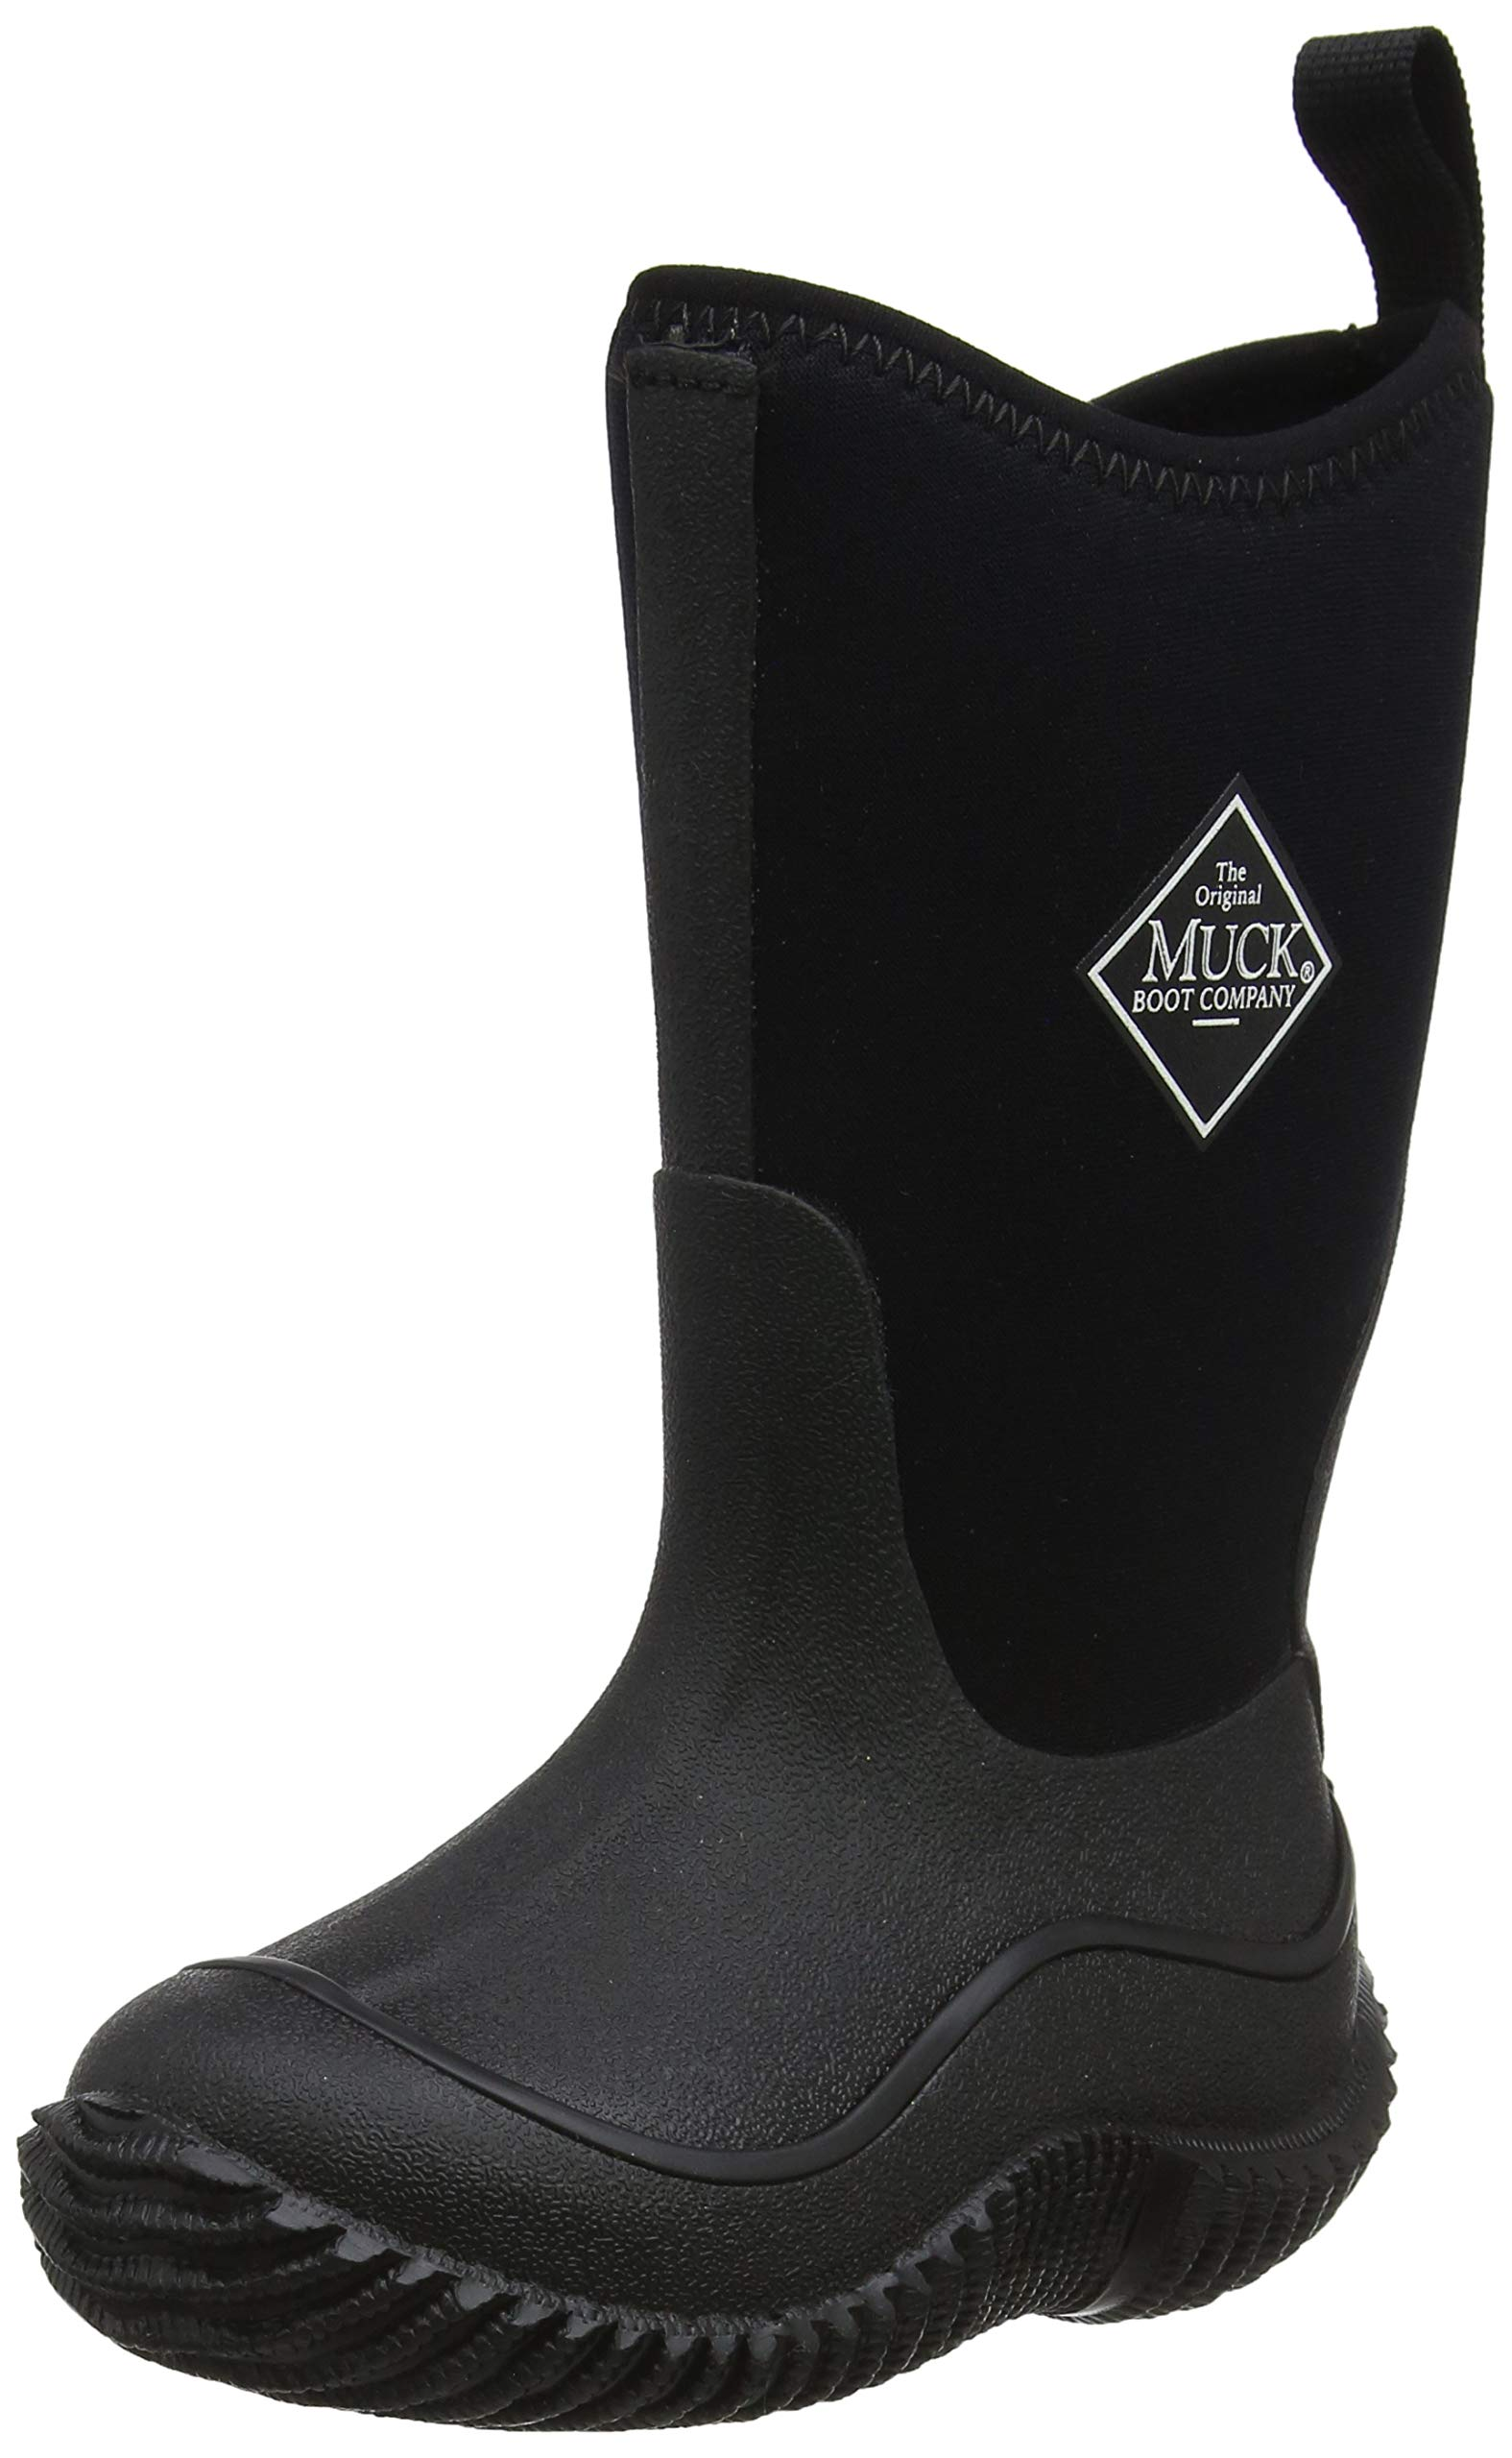 Muck Boots Hale Multi-Season Kids' Rubber Boot,Black/Black,1 M US Little Kid by Muck Boot